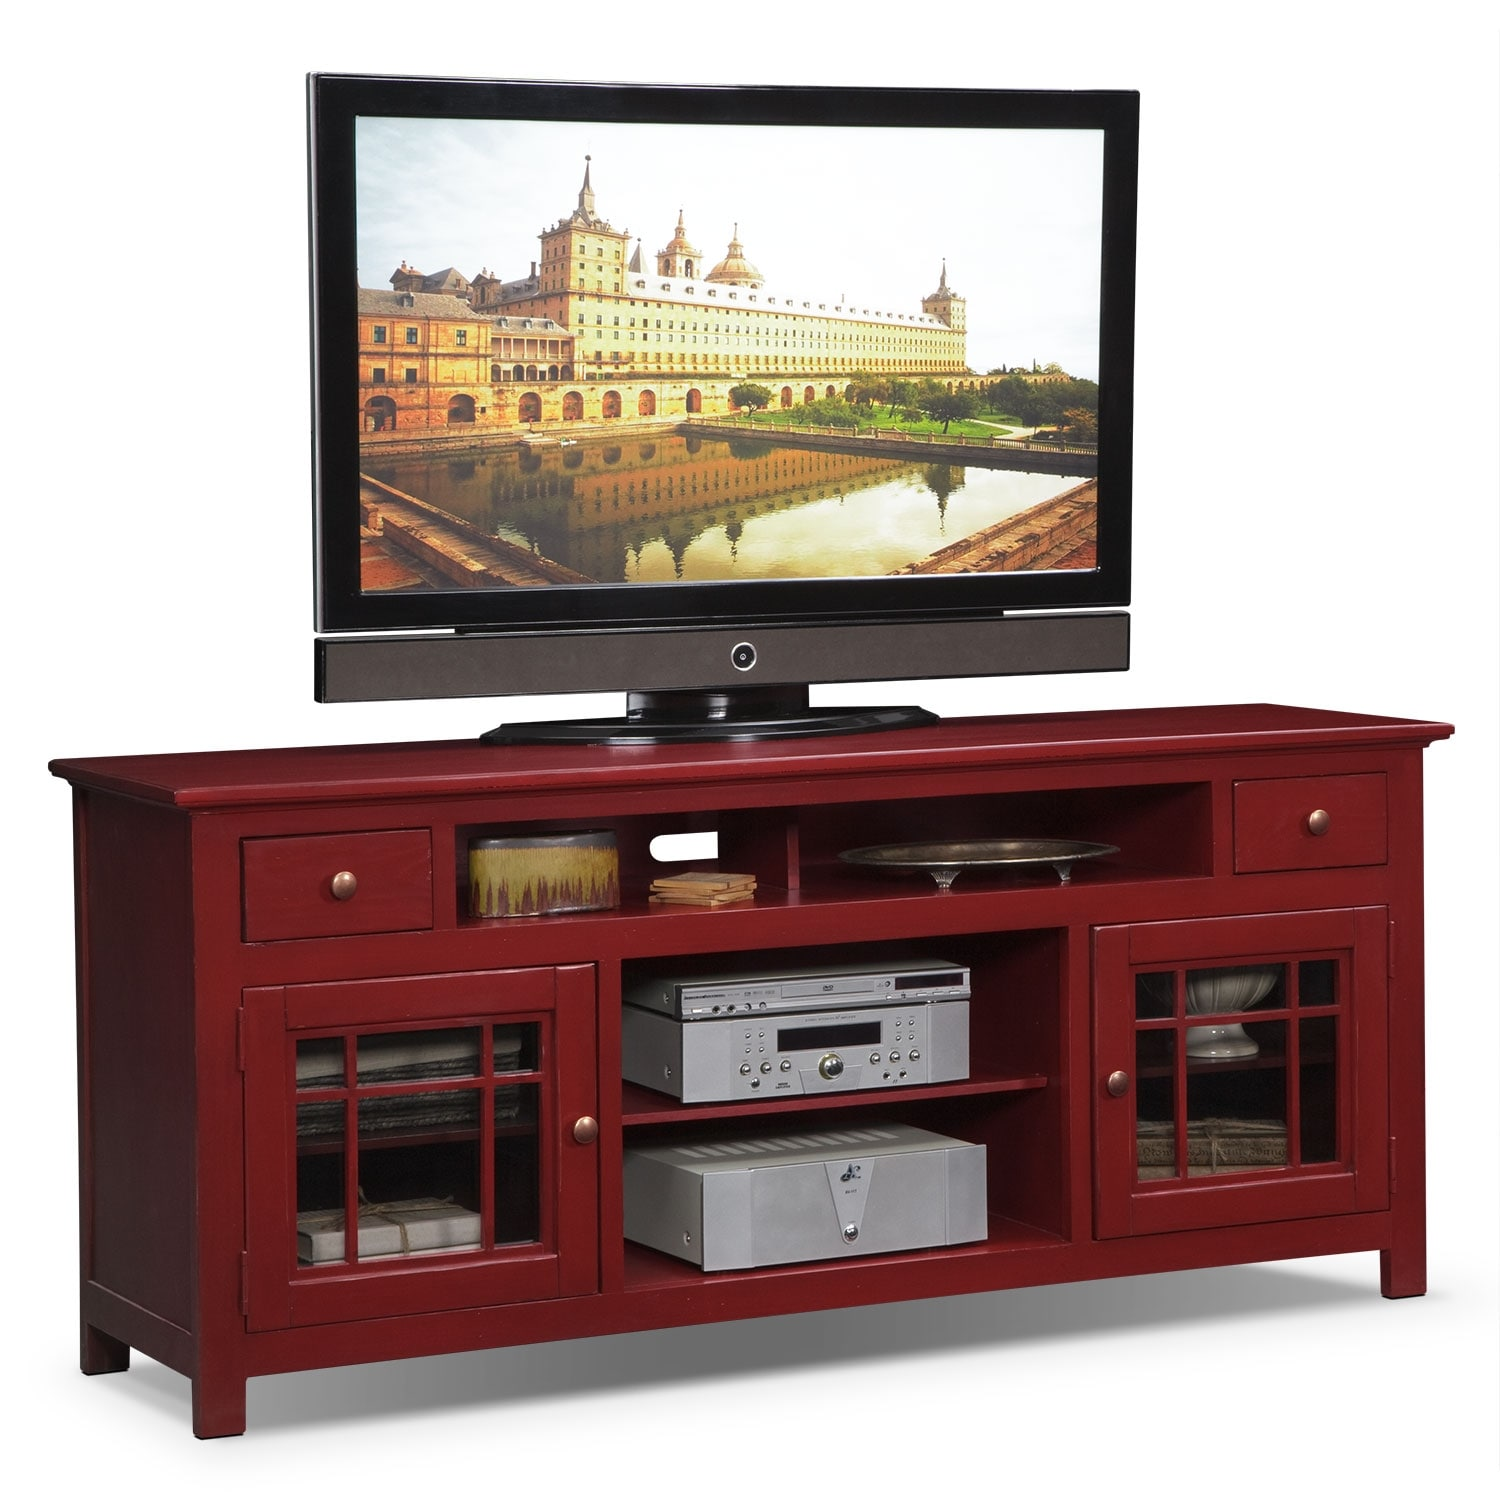 Merrick 74 tv stand red value city furniture for Tv furniture